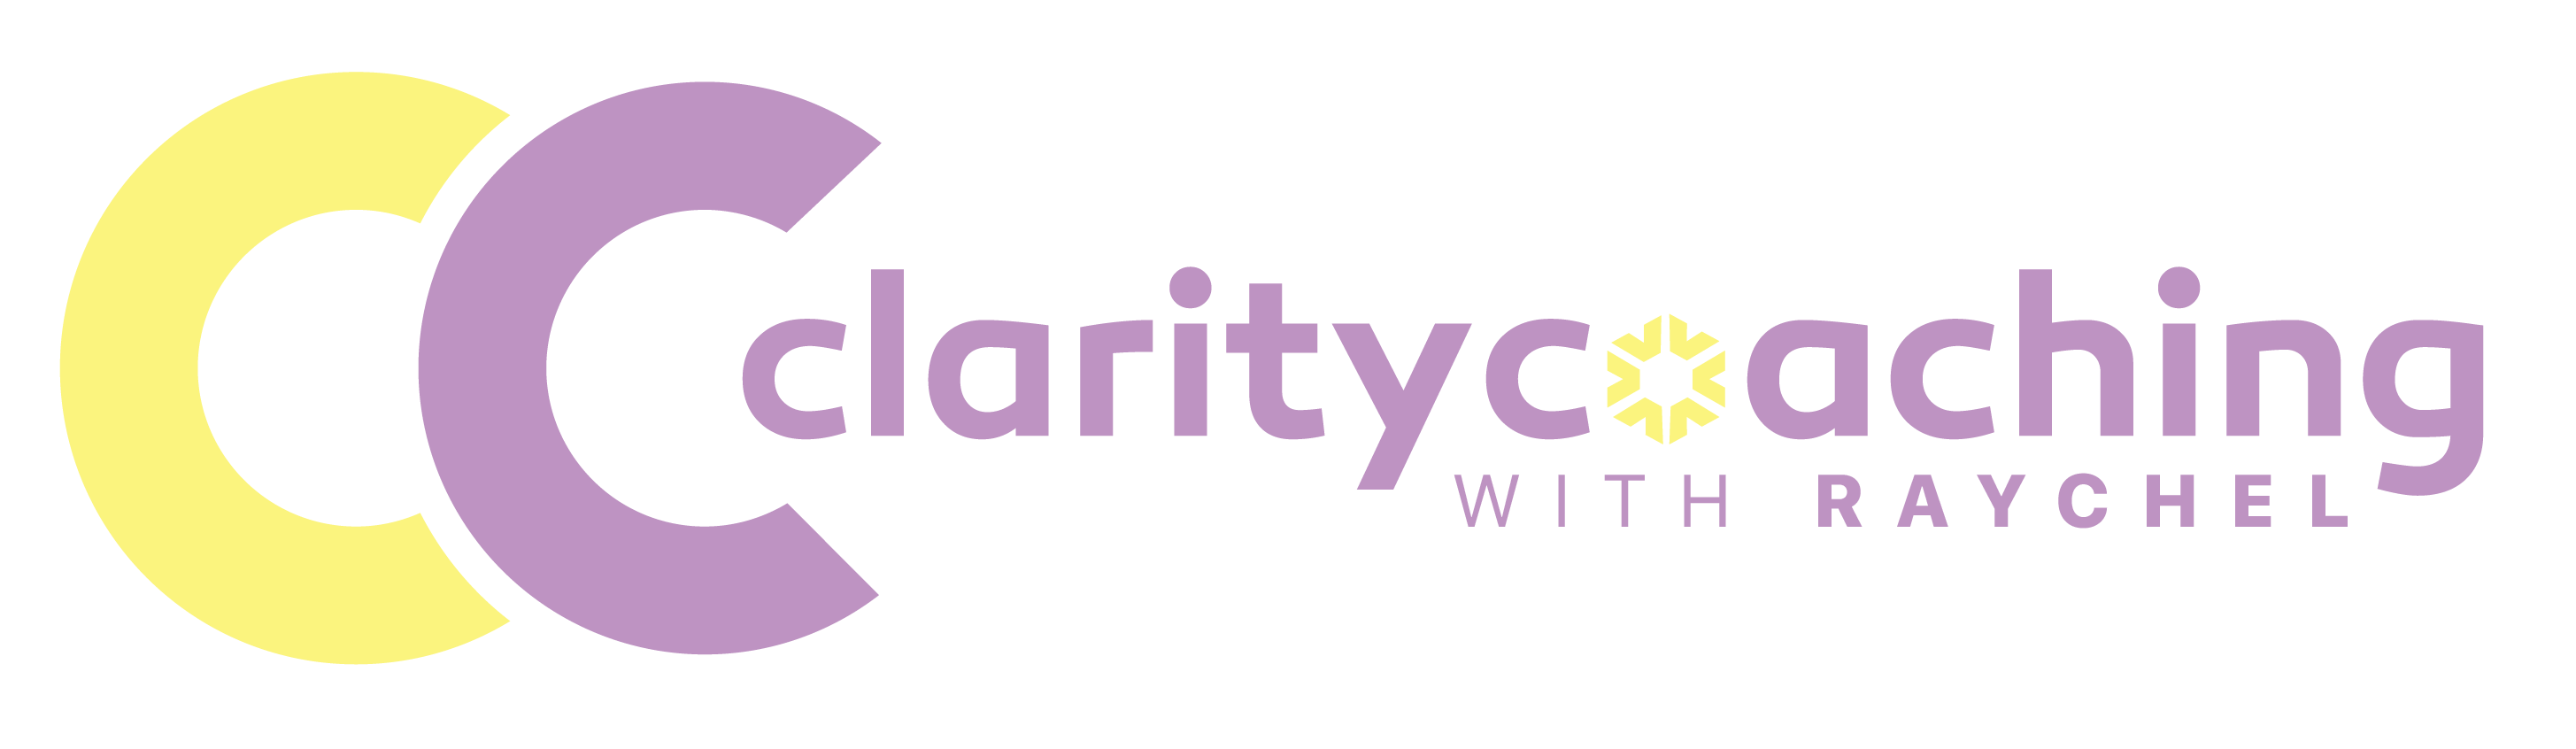 Clarity Coaching with Raychel